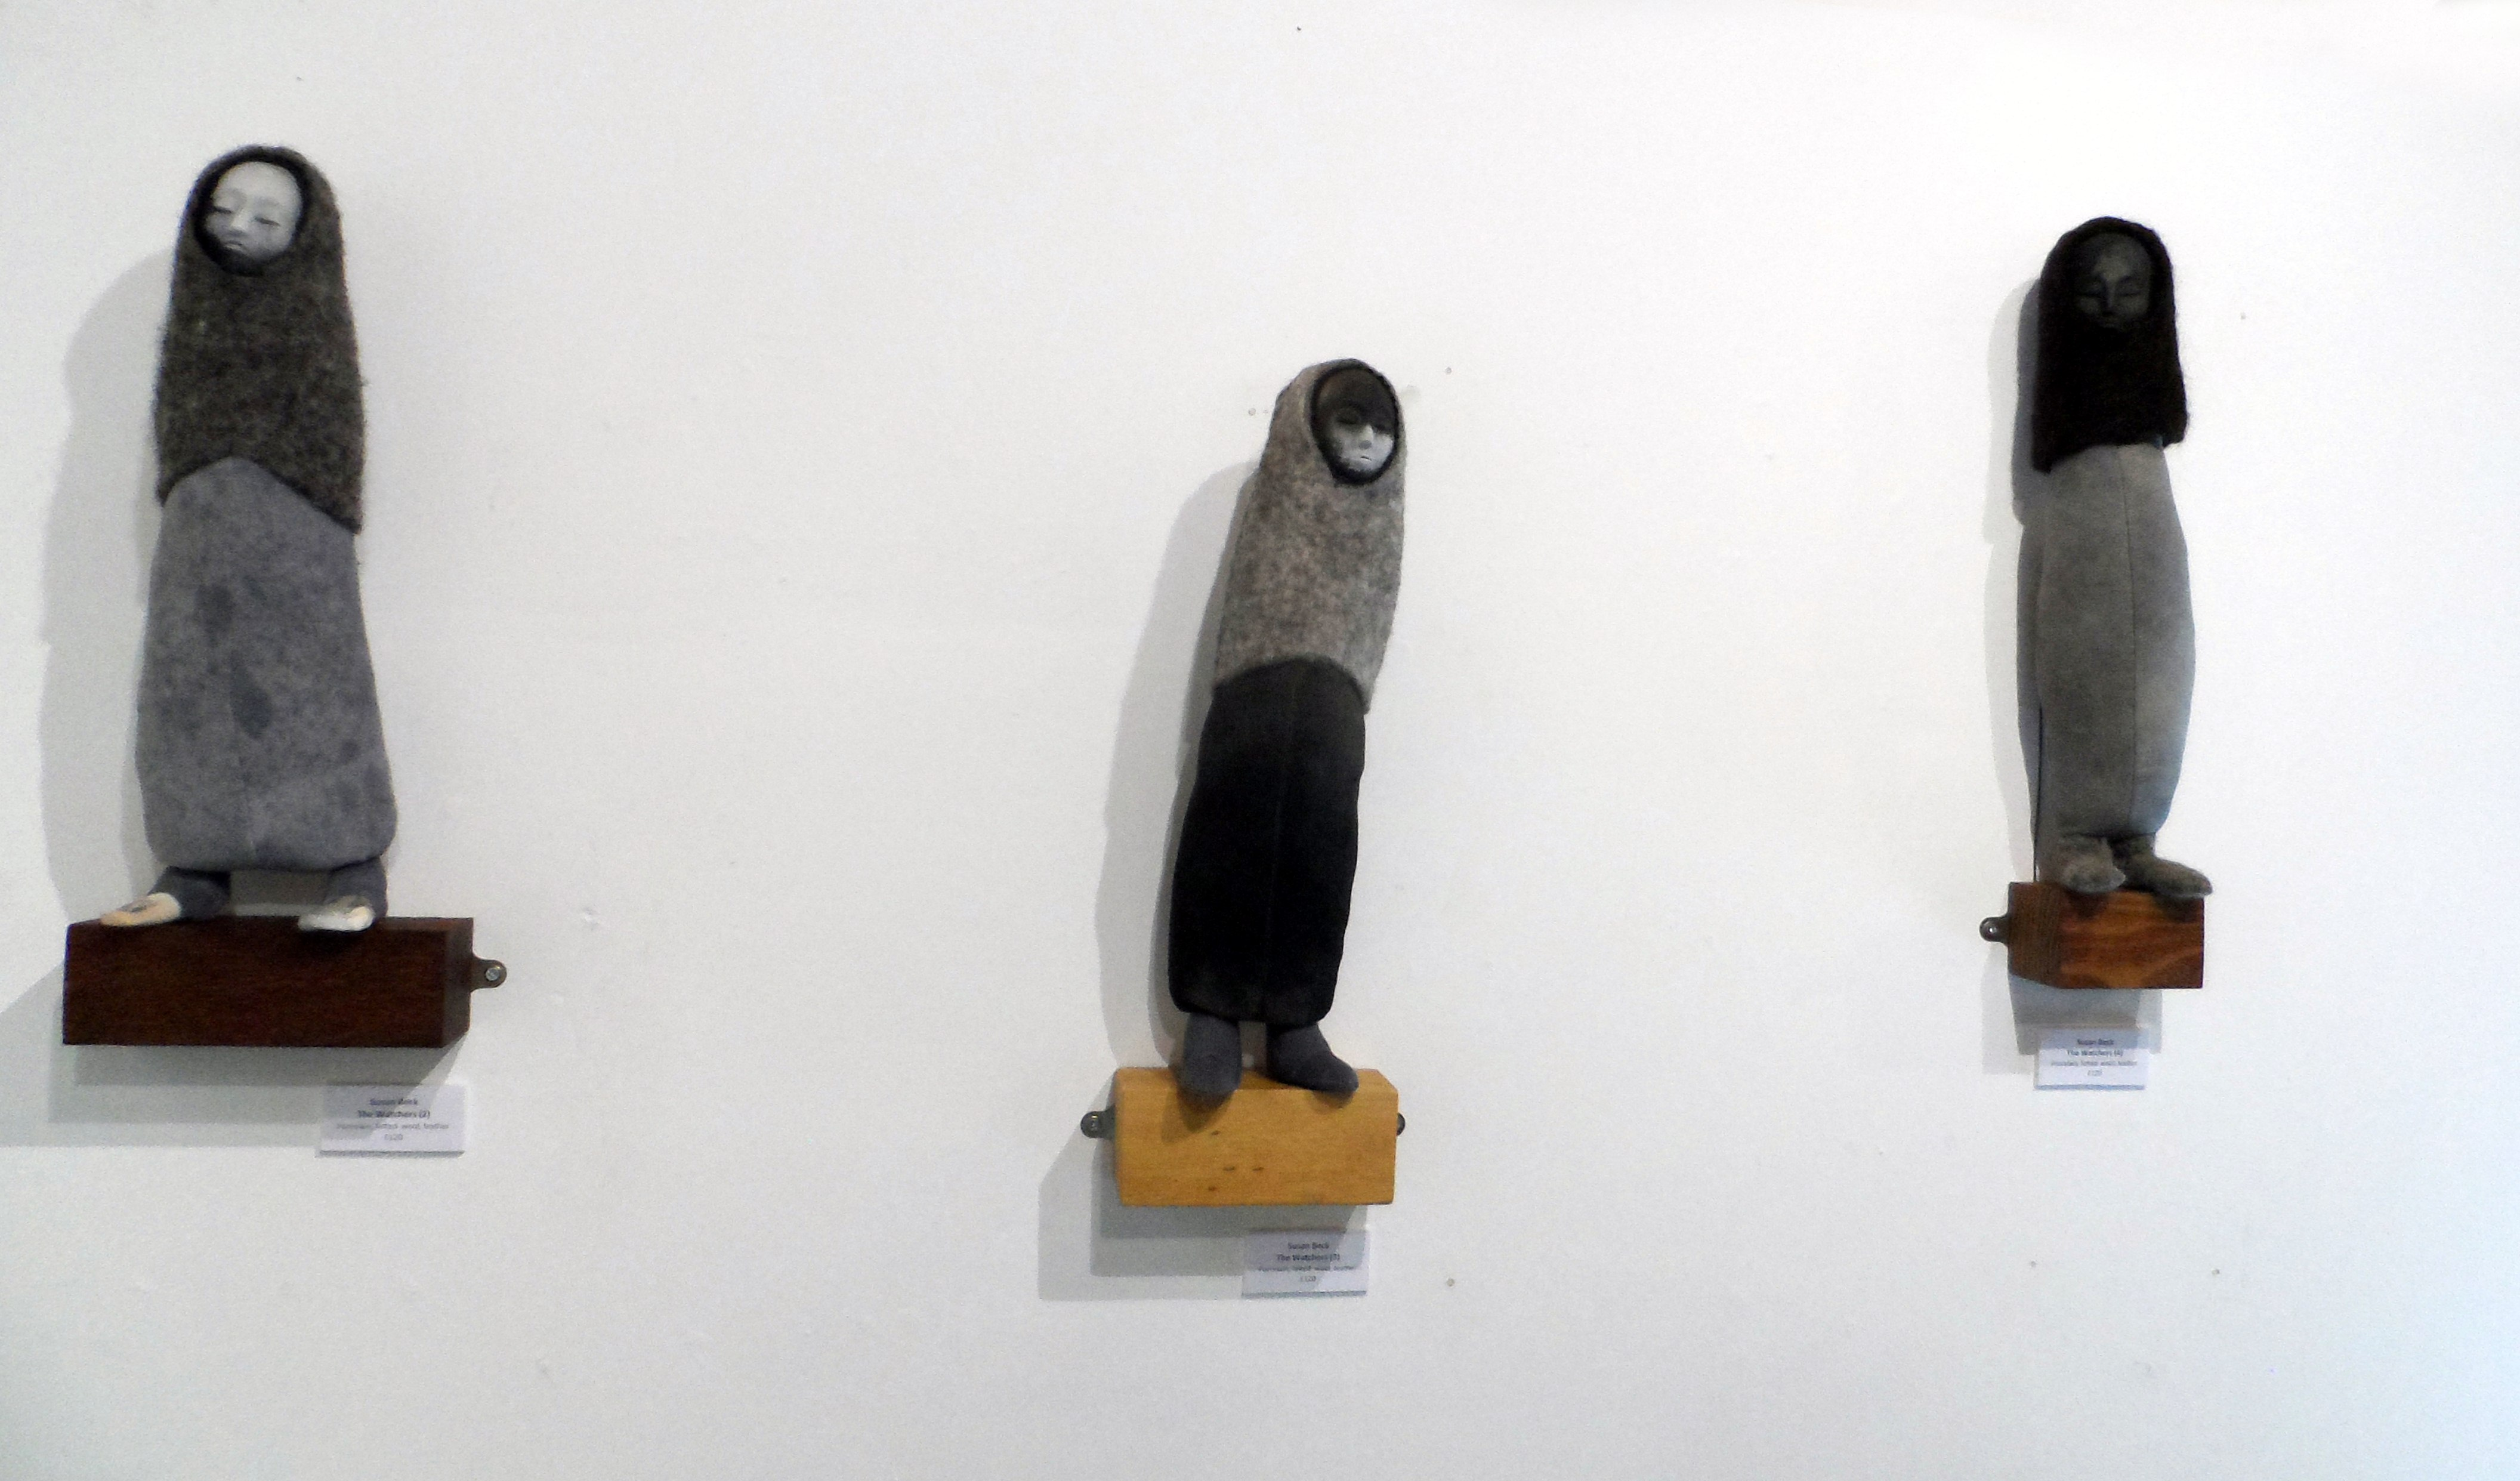 THE WATCHERS 1,2,3 by Susan Beck, porcelain, felted wool, leather, Re-View Textile Group, Frodsham 2019